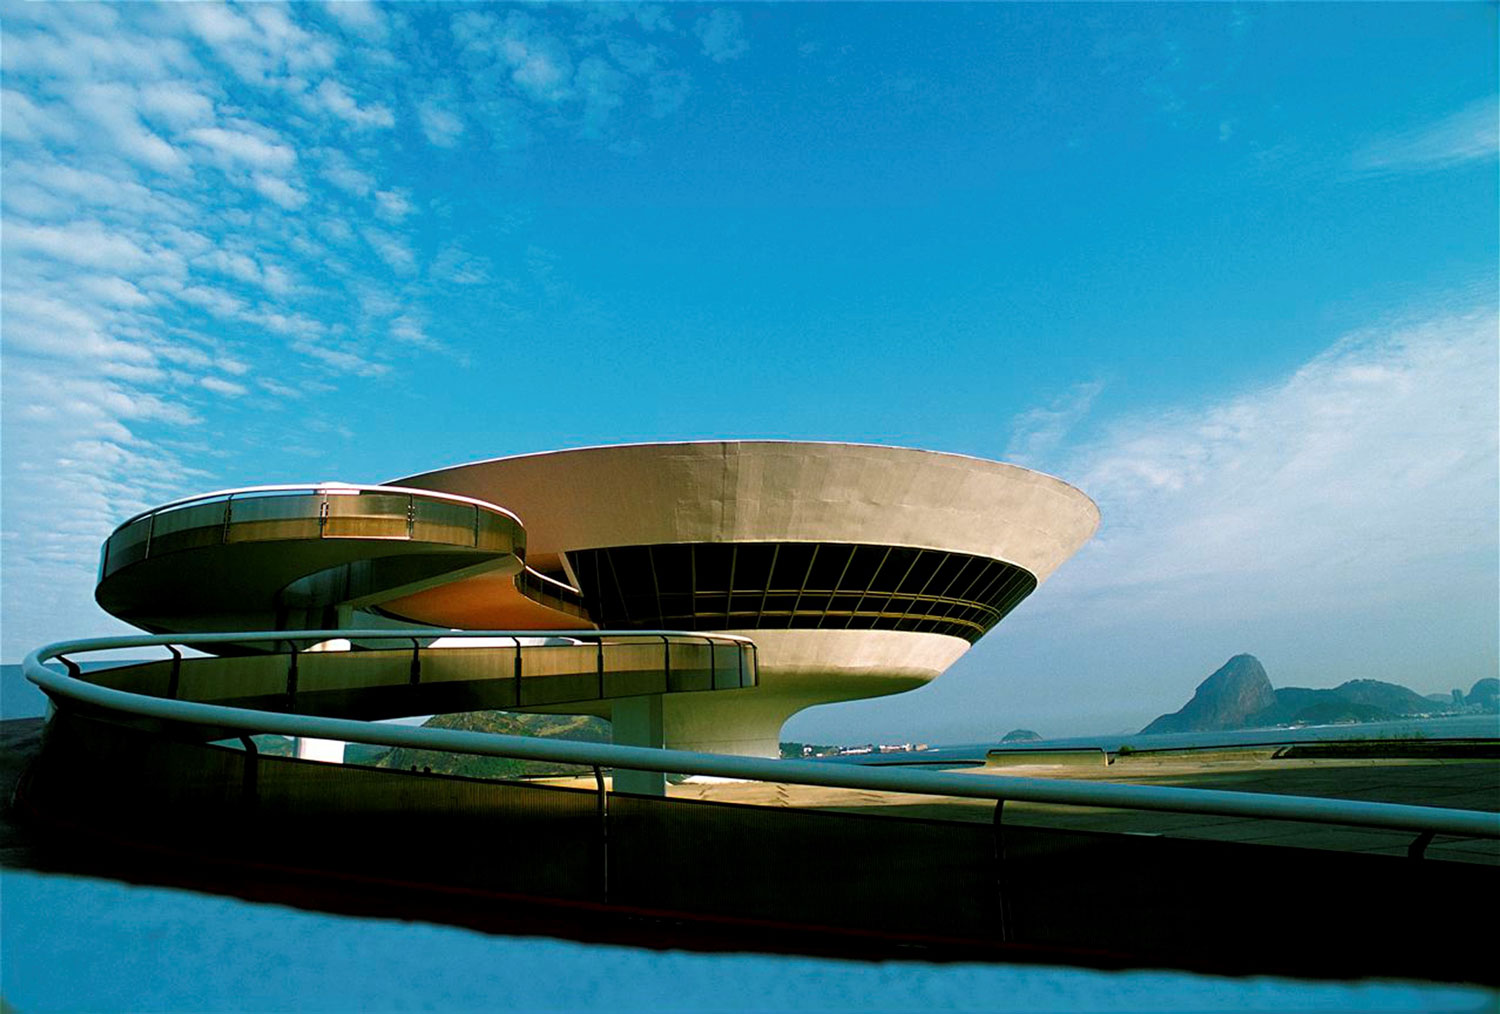 The Museum of Contemporary Art of Niteroi